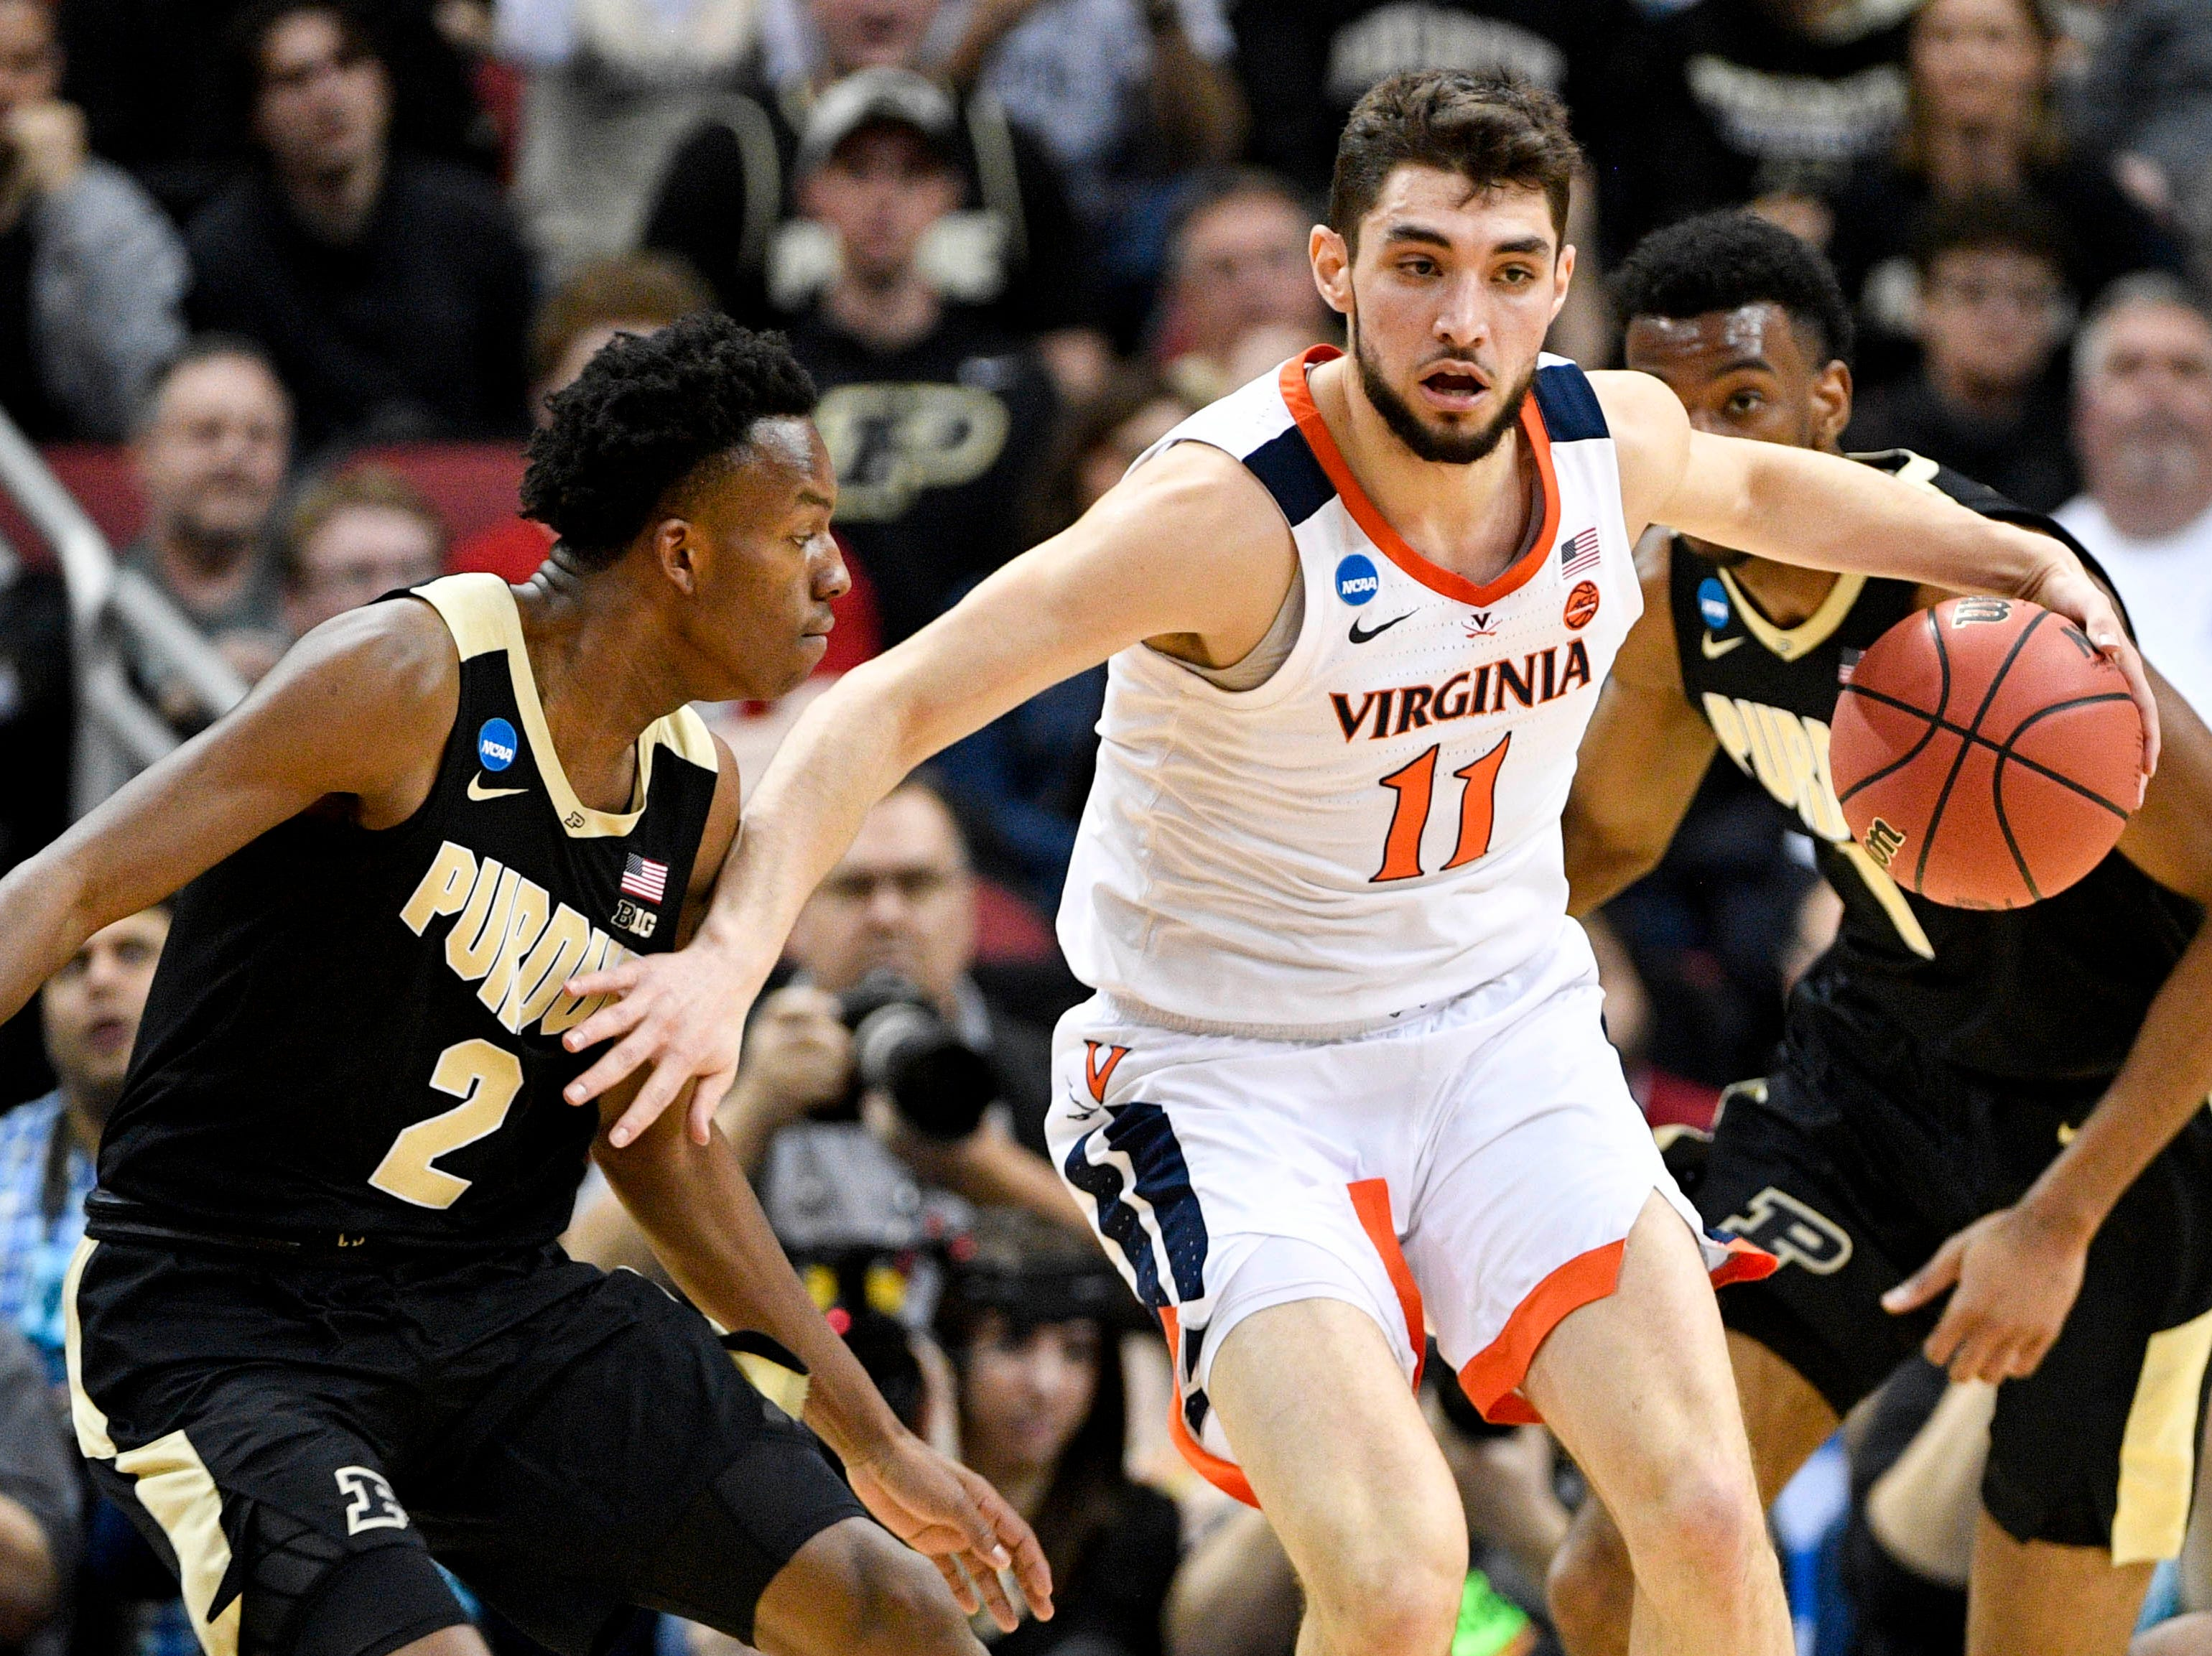 Mar 30, 2019; Louisville, KY, United States; Virginia Cavaliers guard Ty Jerome (11) works around Purdue Boilermakers guard Eric Hunter Jr. (2) during the first half in the championship game of the south regional of the 2019 NCAA Tournament at KFC Yum Center. Mandatory Credit: Jamie Rhodes-USA TODAY Sports